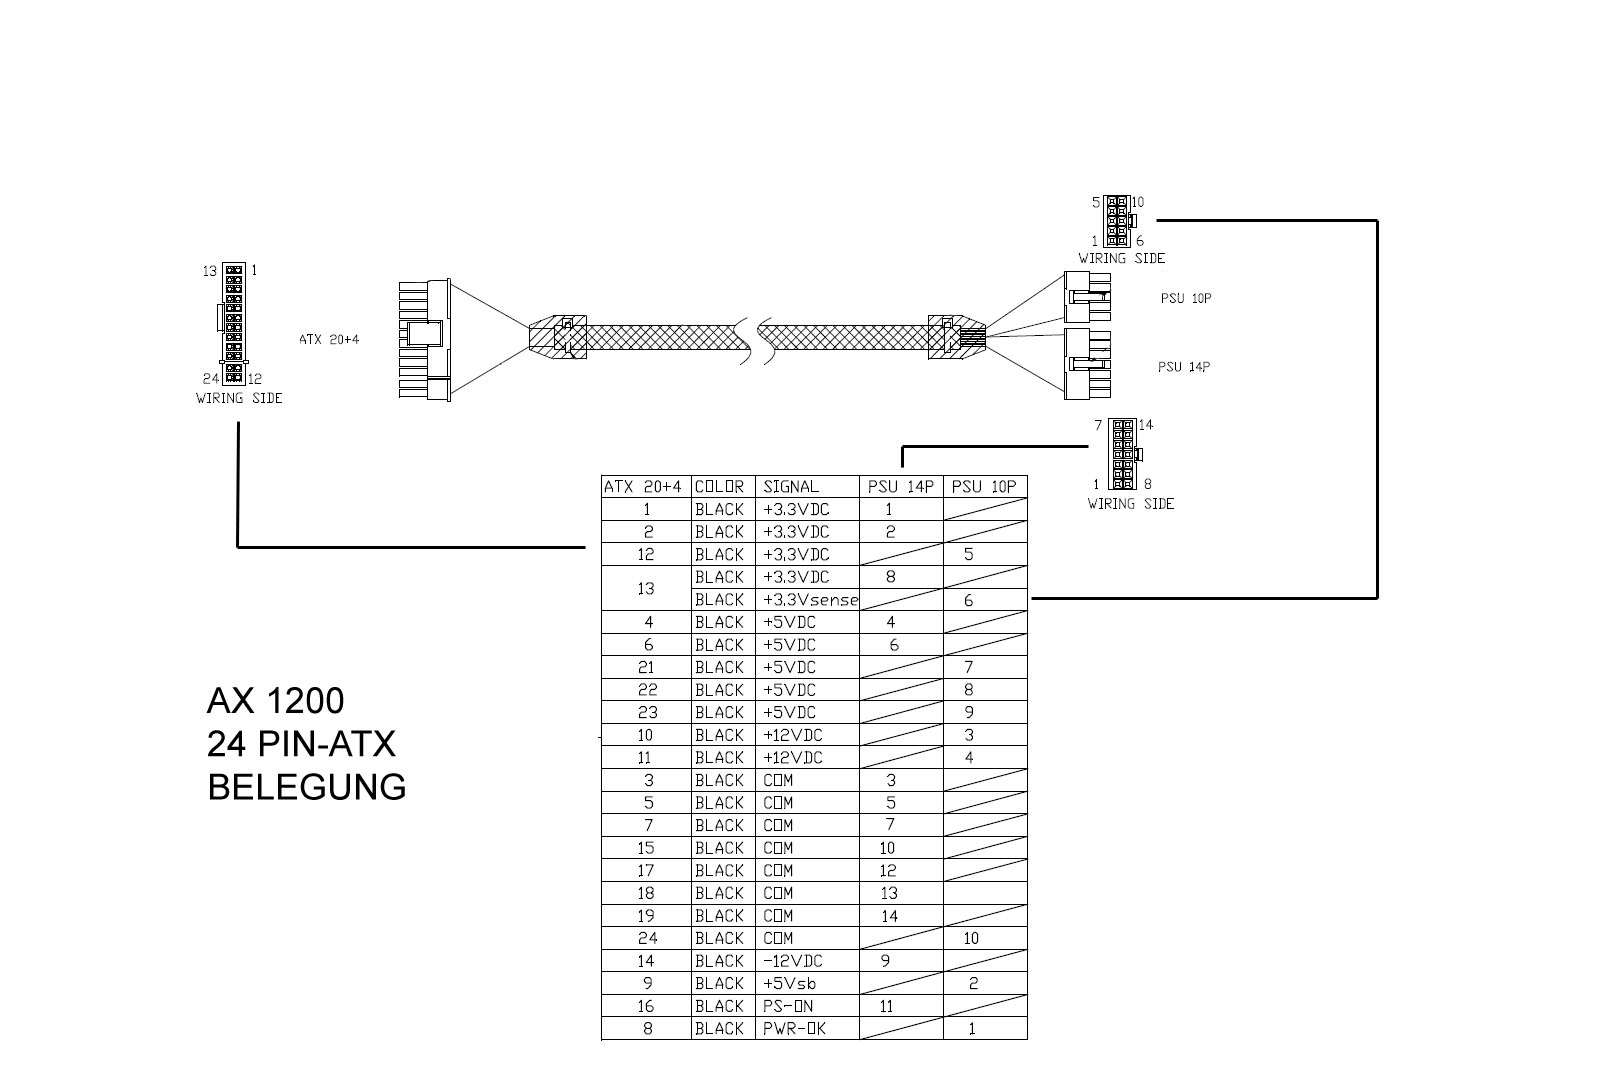 Z 2300 Wiring 15 Pin Diagram Schematic Diagrams Logitech Circuit Help W Making Fresh Cables For A Corsair 1200ax Overclock Net Bulb